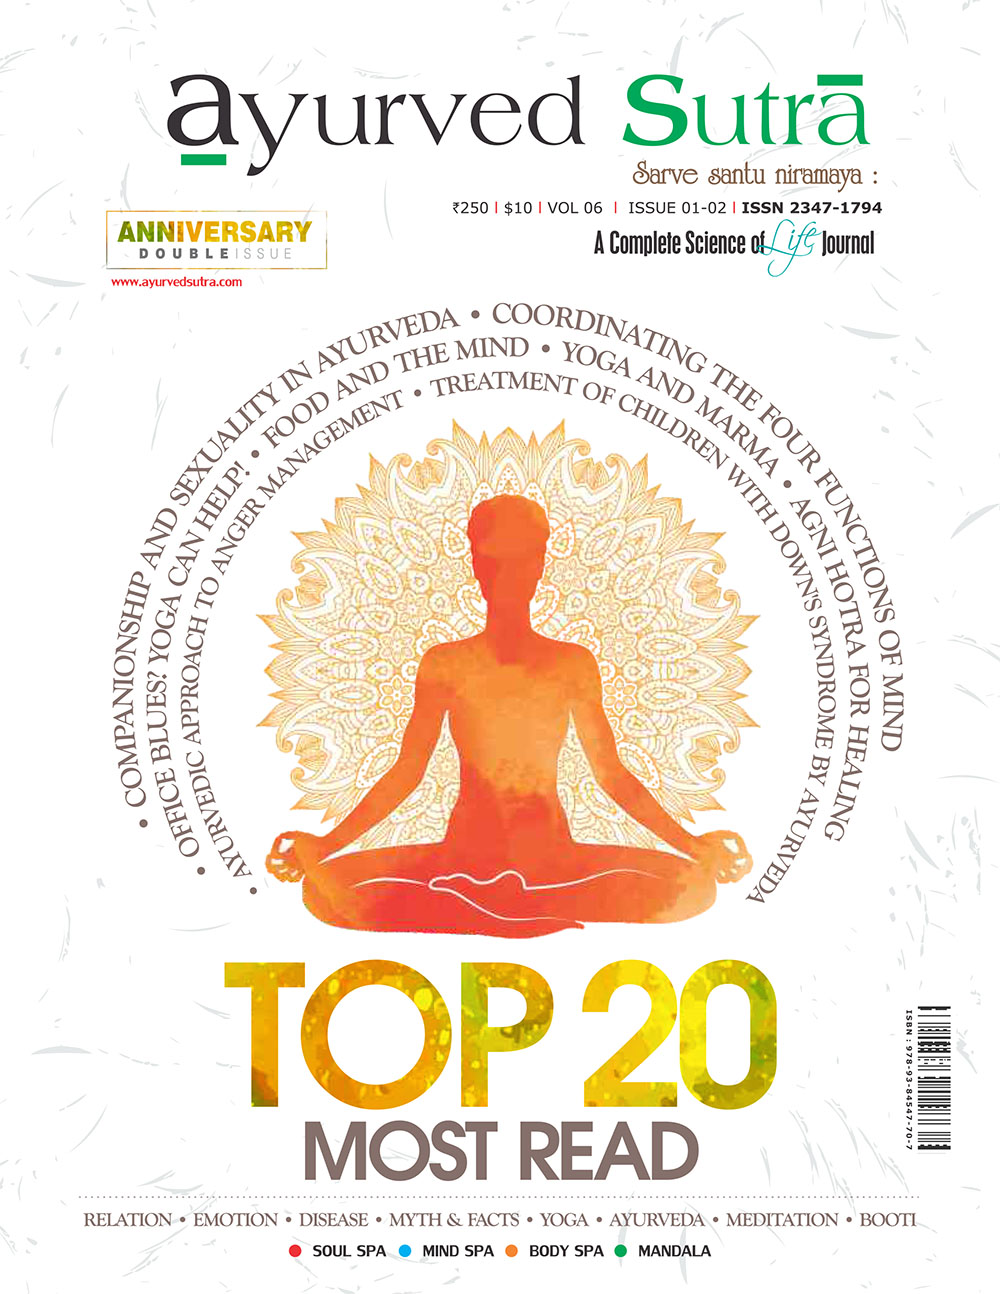 Ayurvedsutra Vol 06 issue 01 02 1 - Yoga and effect on Marma